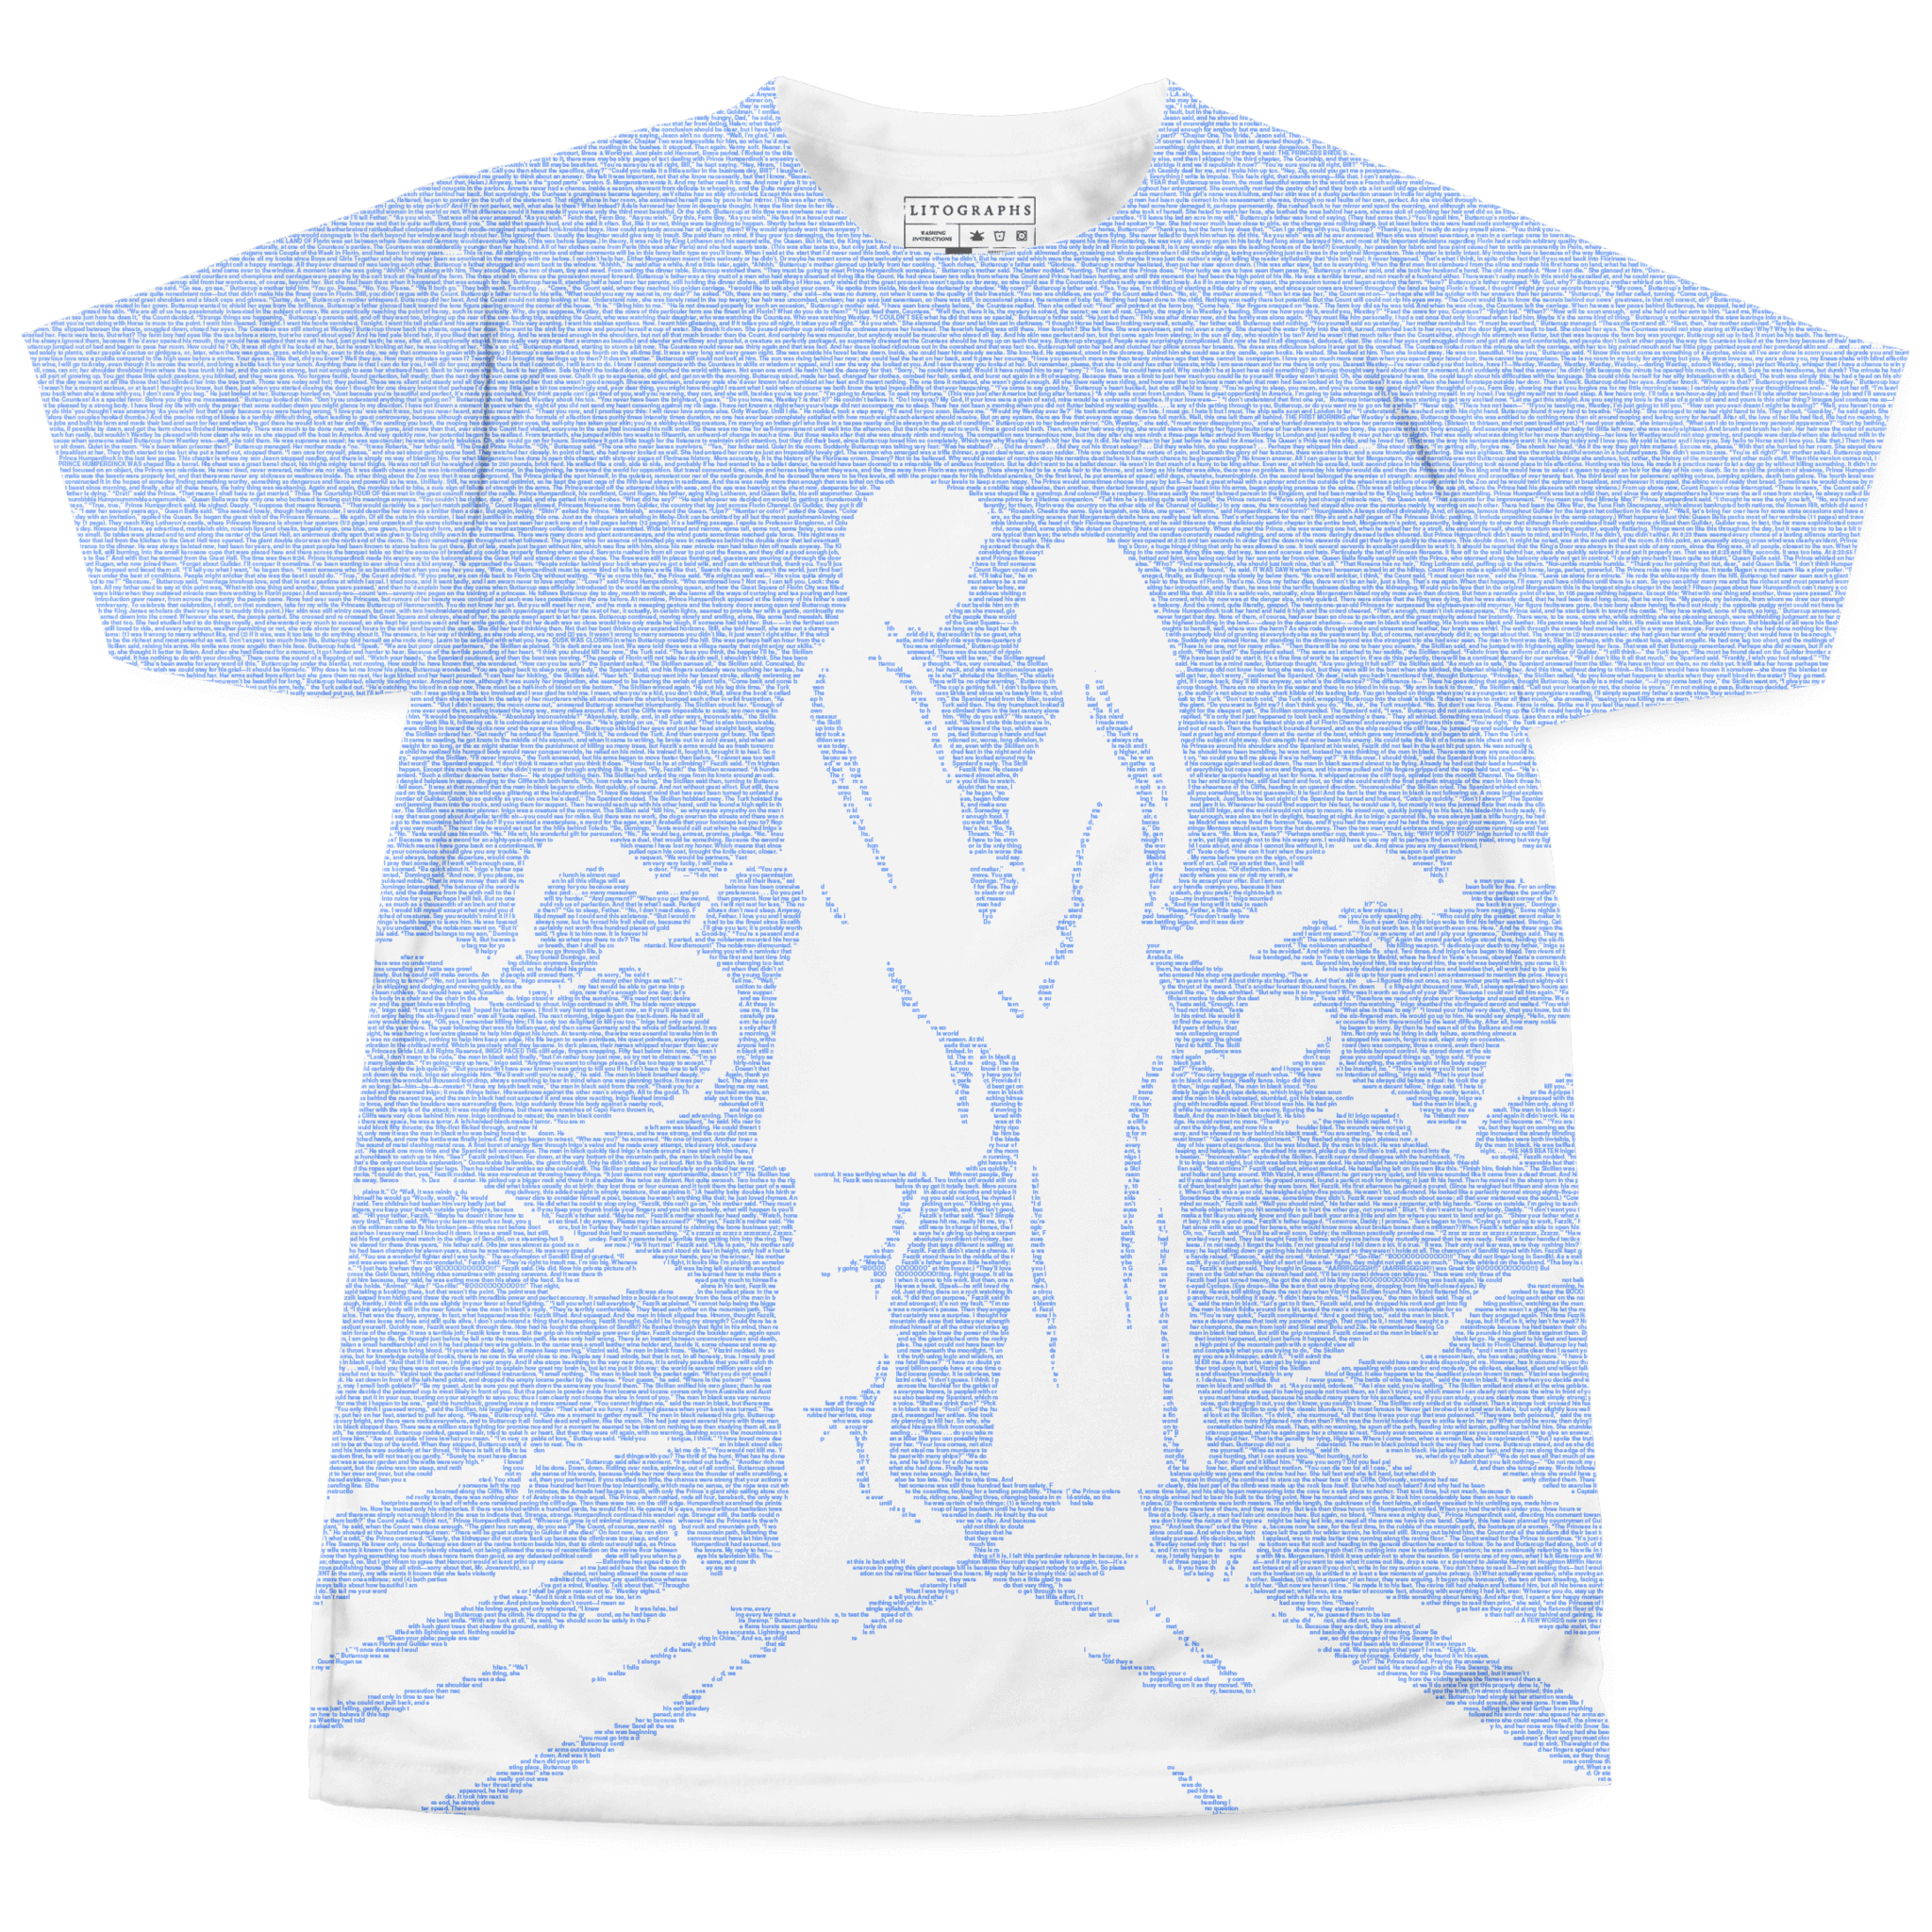 books on t shirts up to words litographs the princess bride